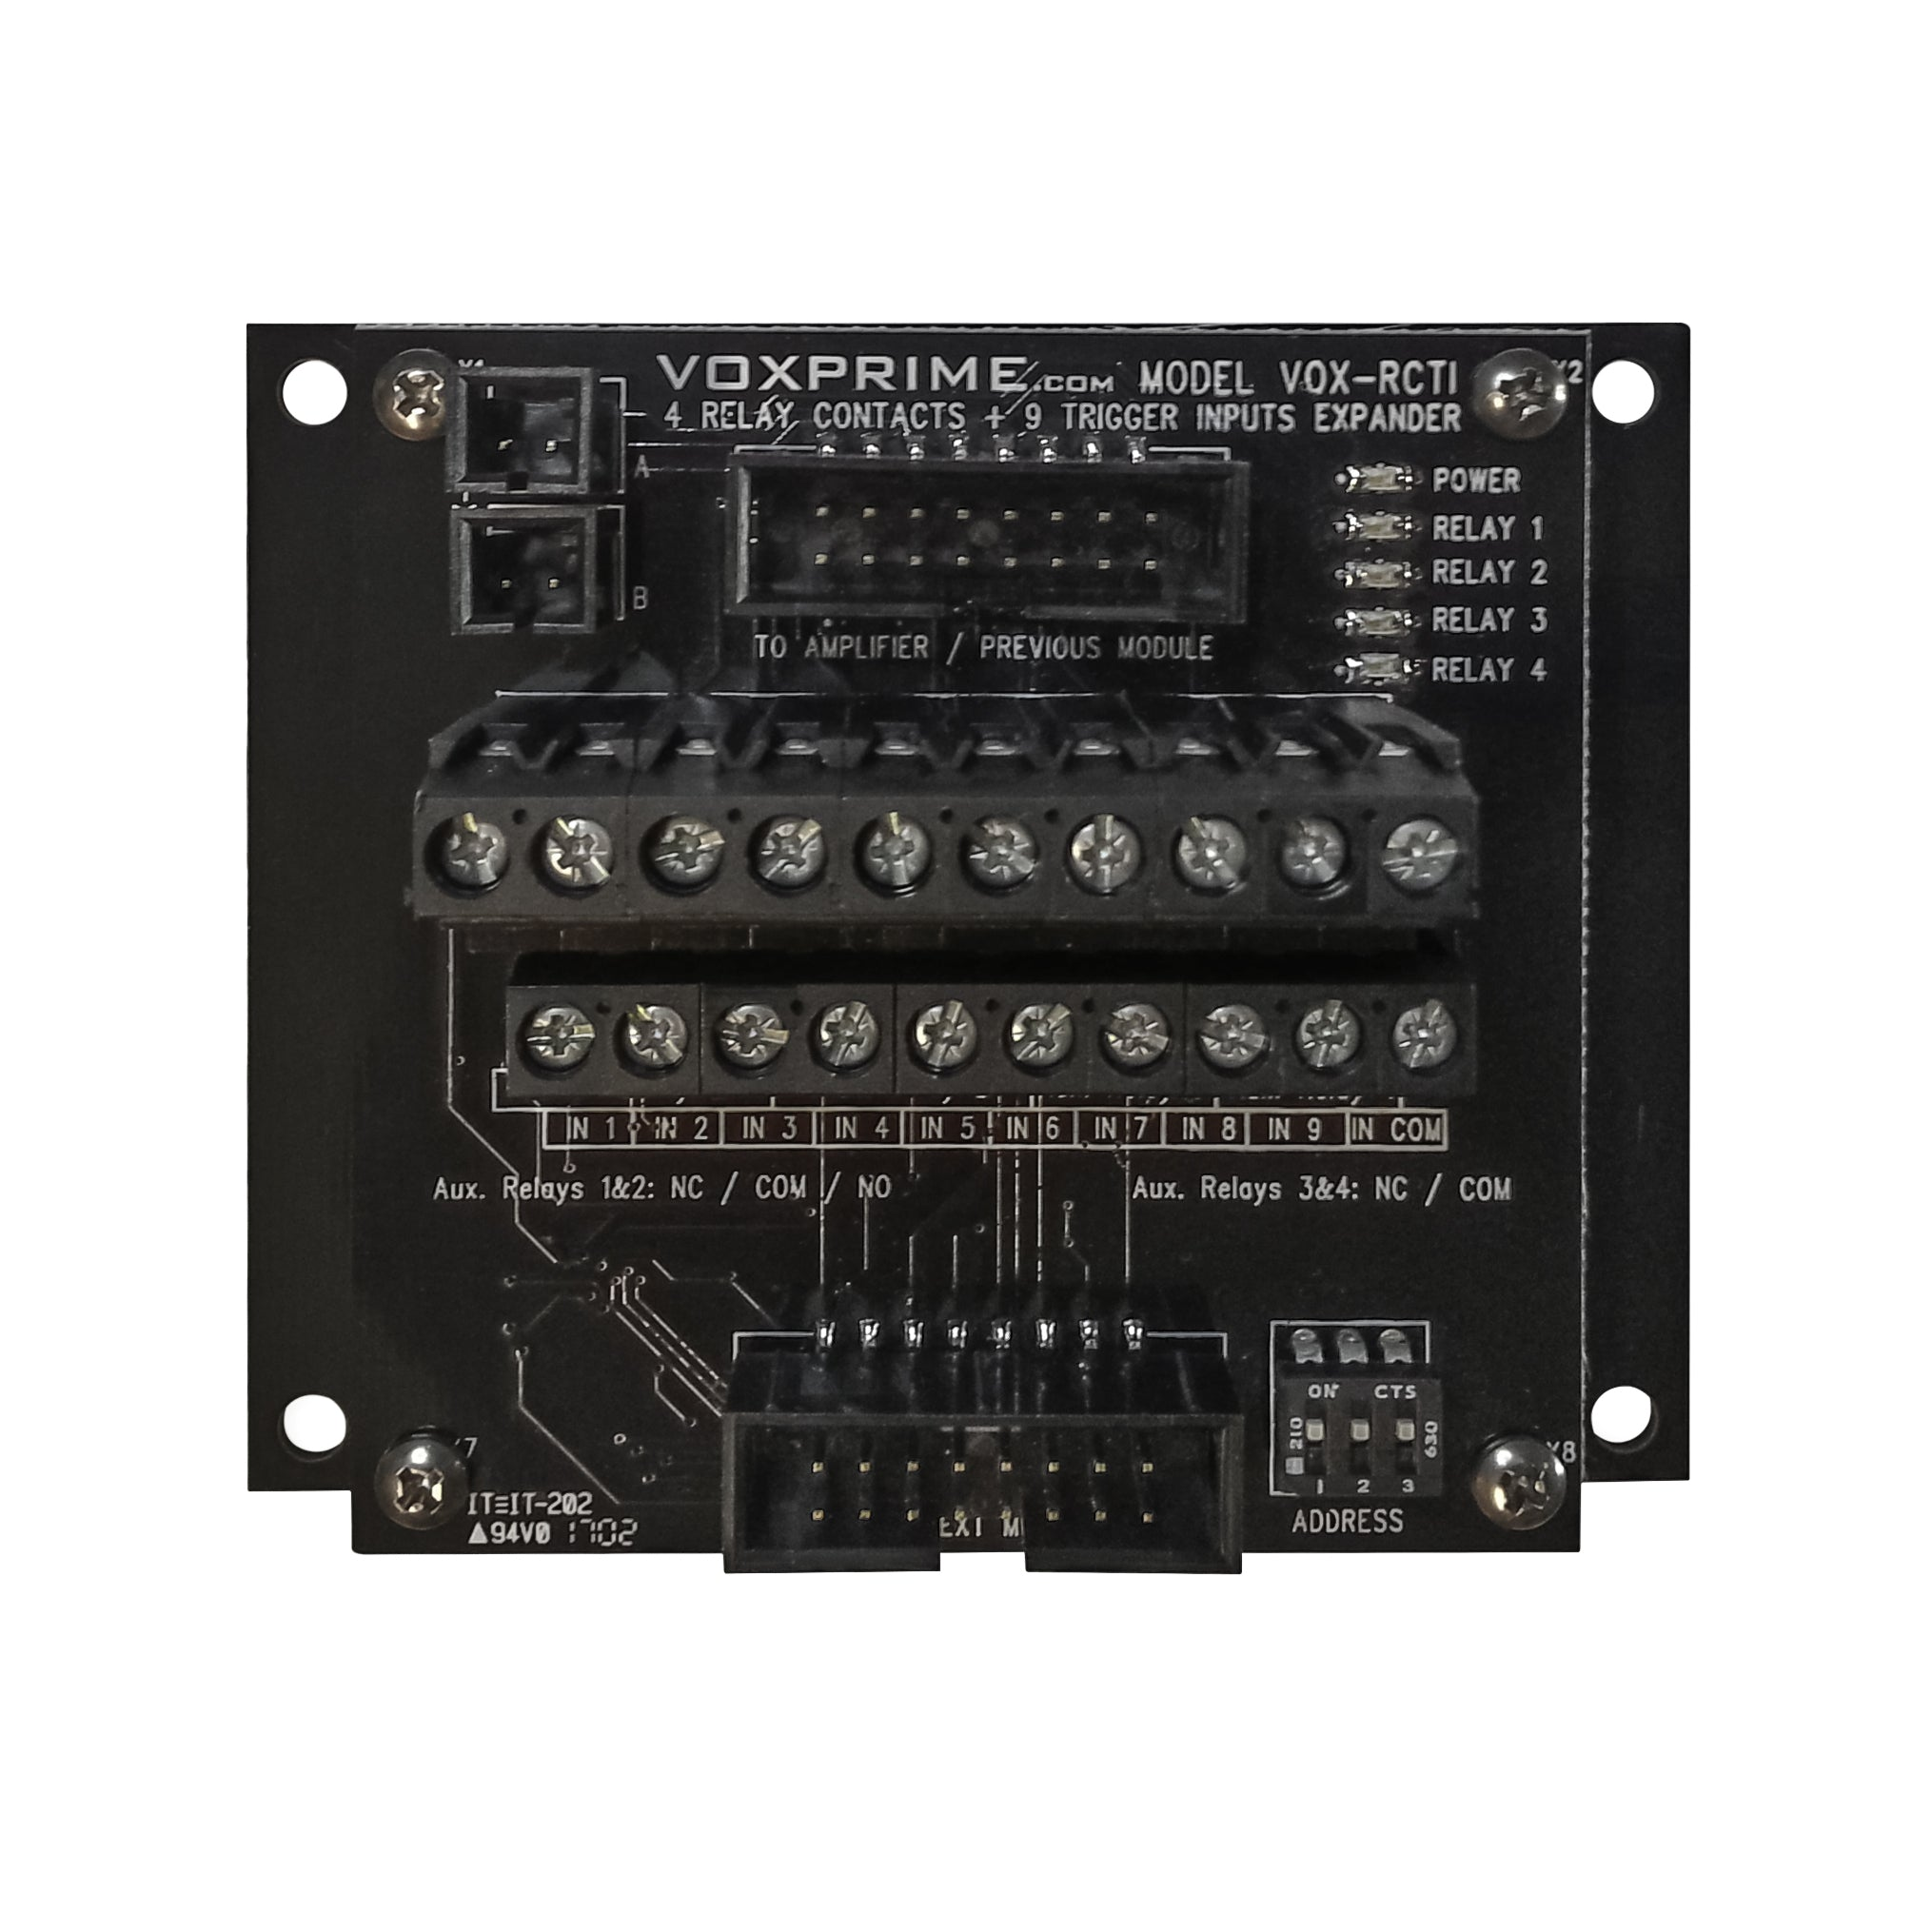 4 Relay Contacts 9 Trigger Inputs Module Voxprime No And Nc Of